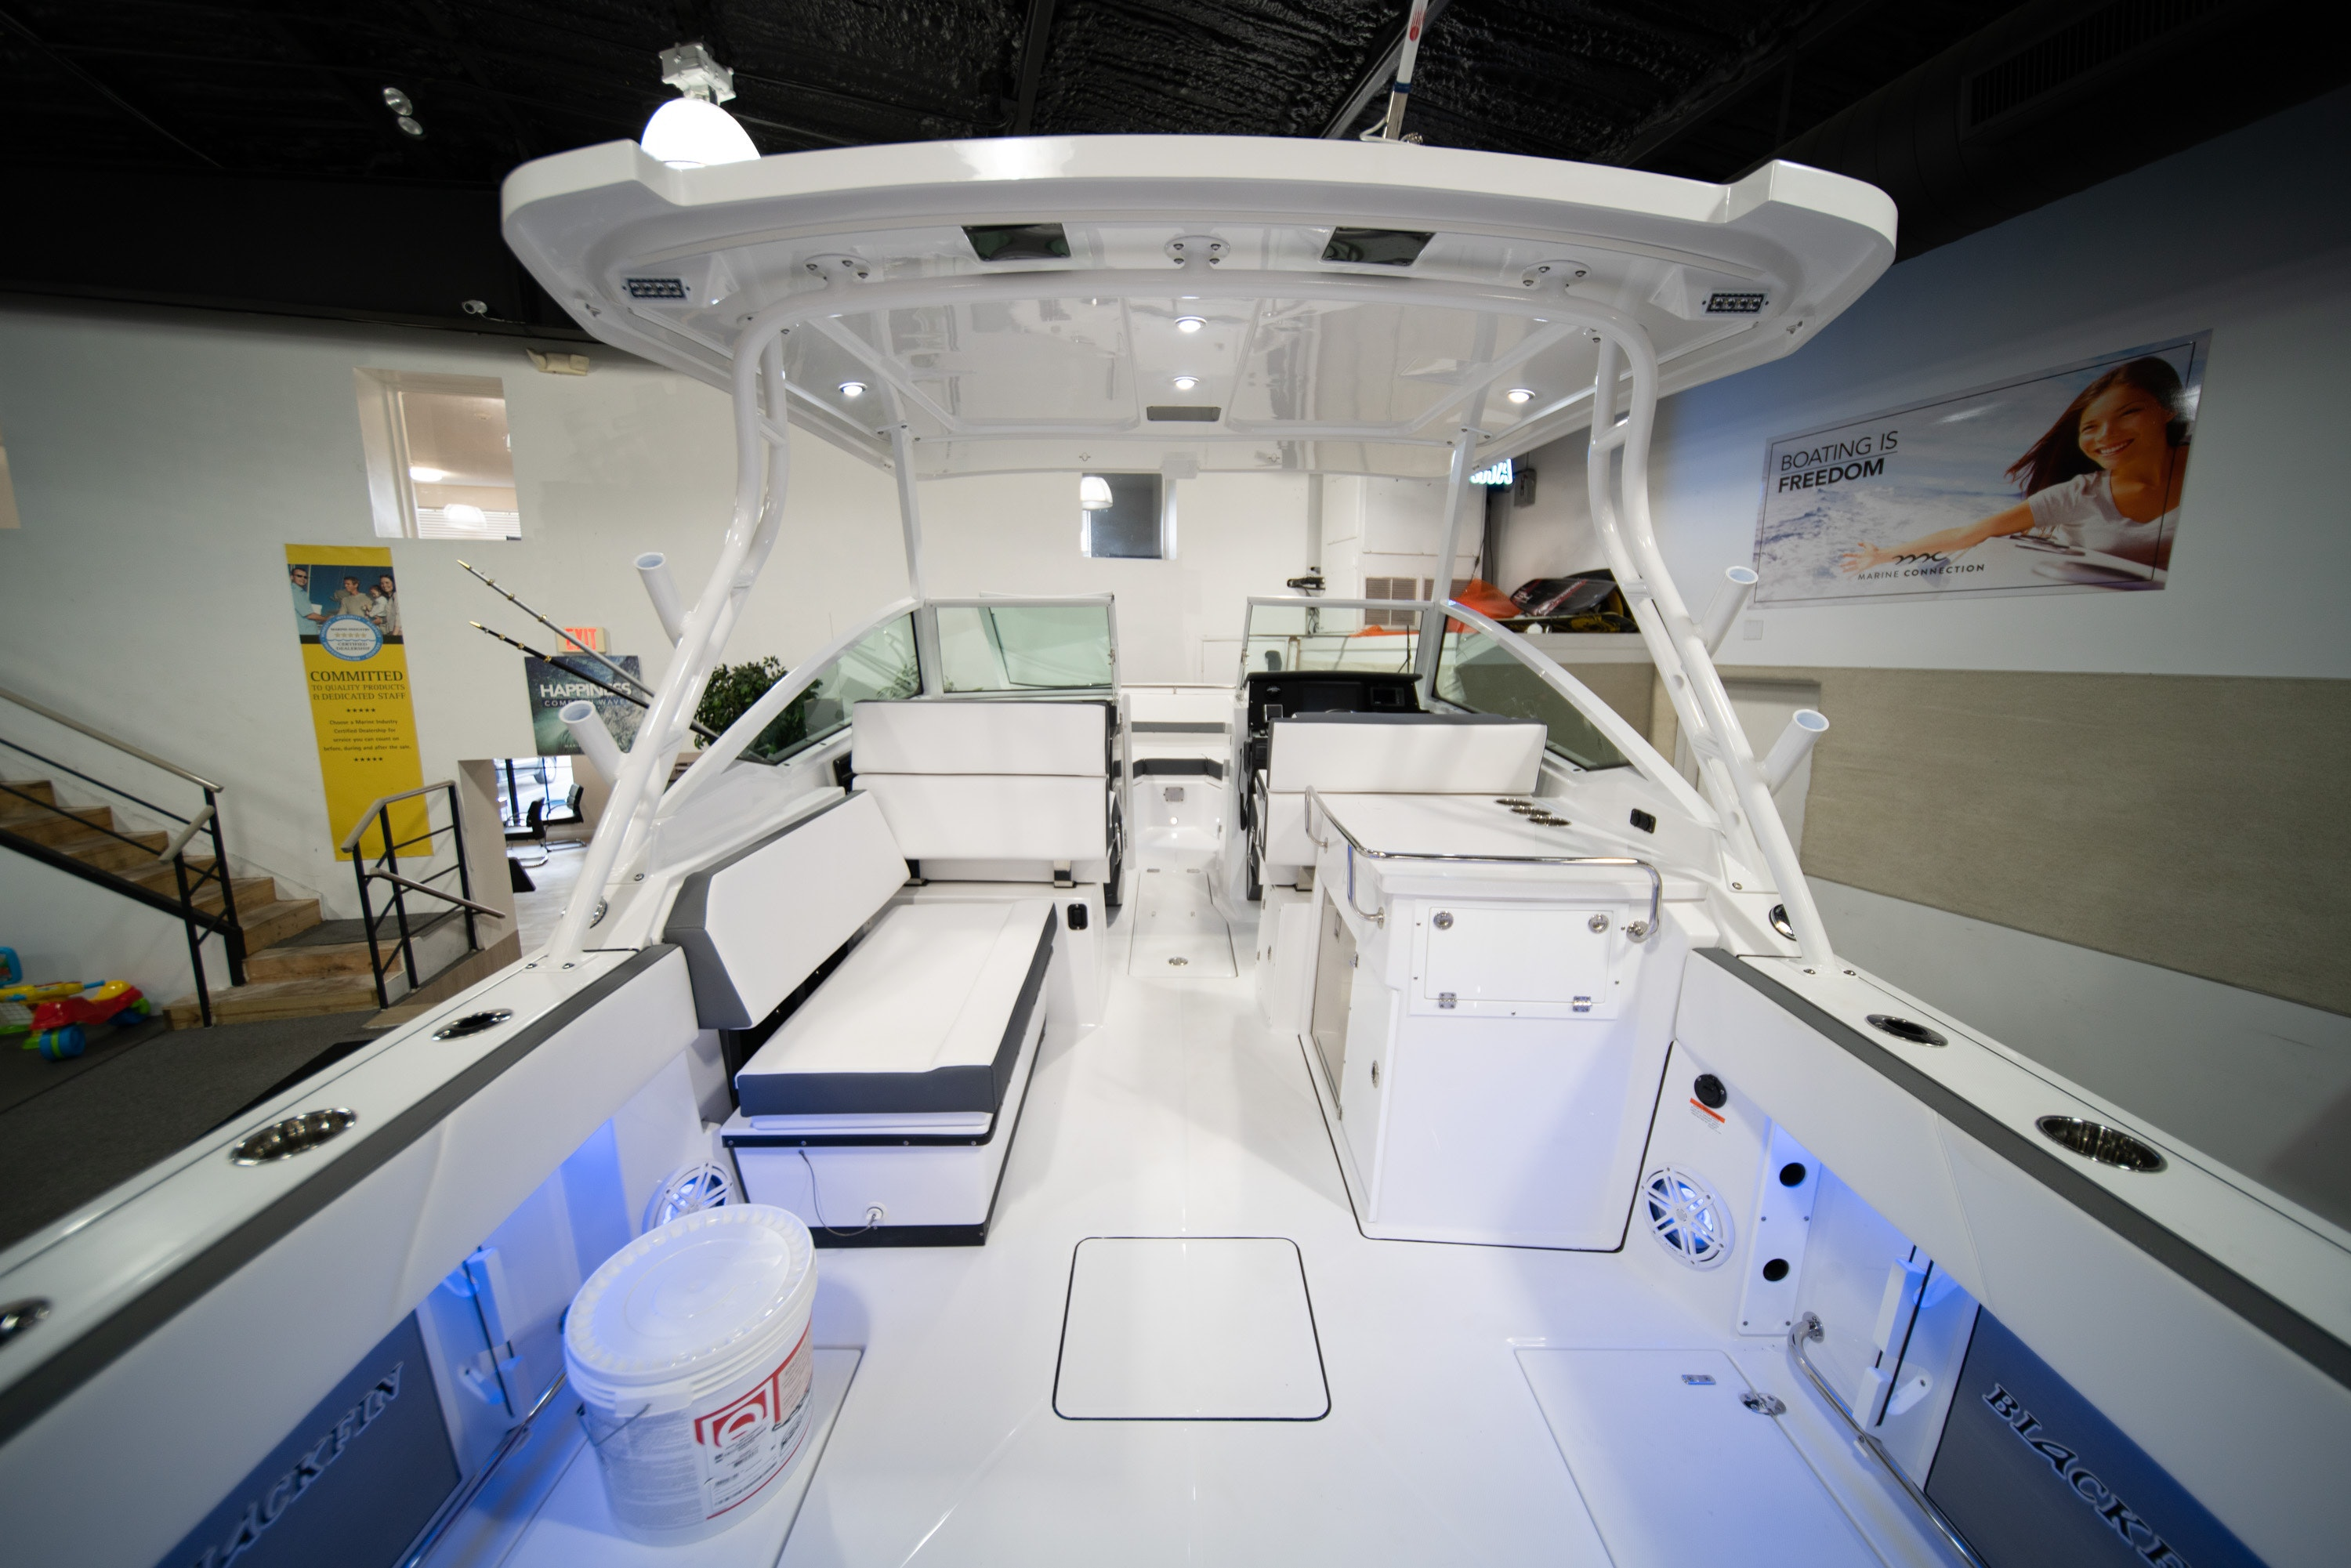 Thumbnail 4 for New 2020 Blackfin 272DC boat for sale in West Palm Beach, FL